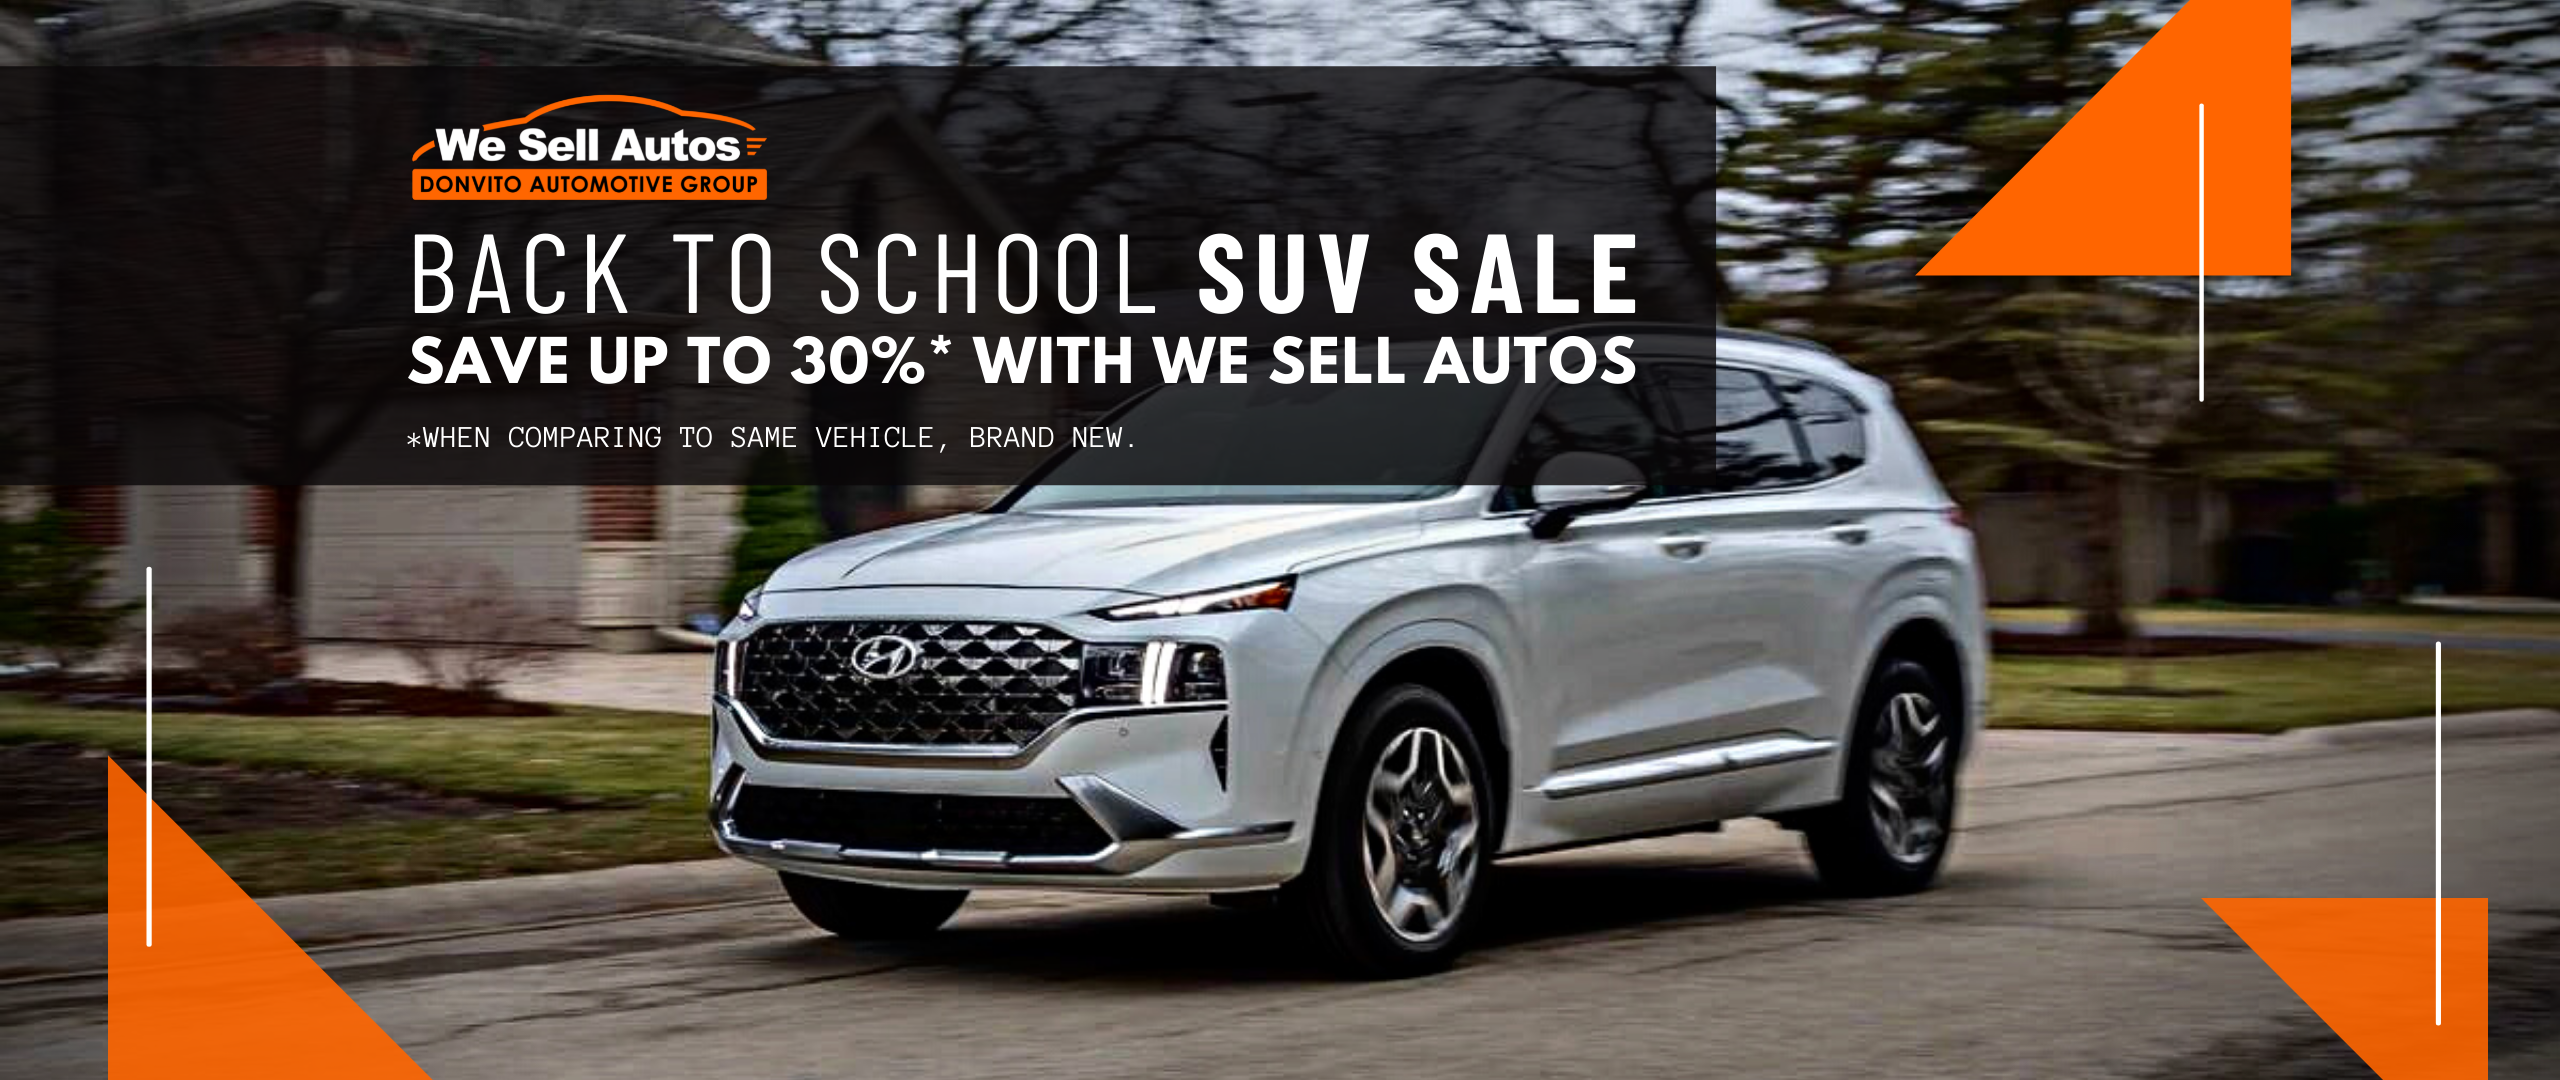 Suv Sale - Special Conditions For Students, Newcomers And More!